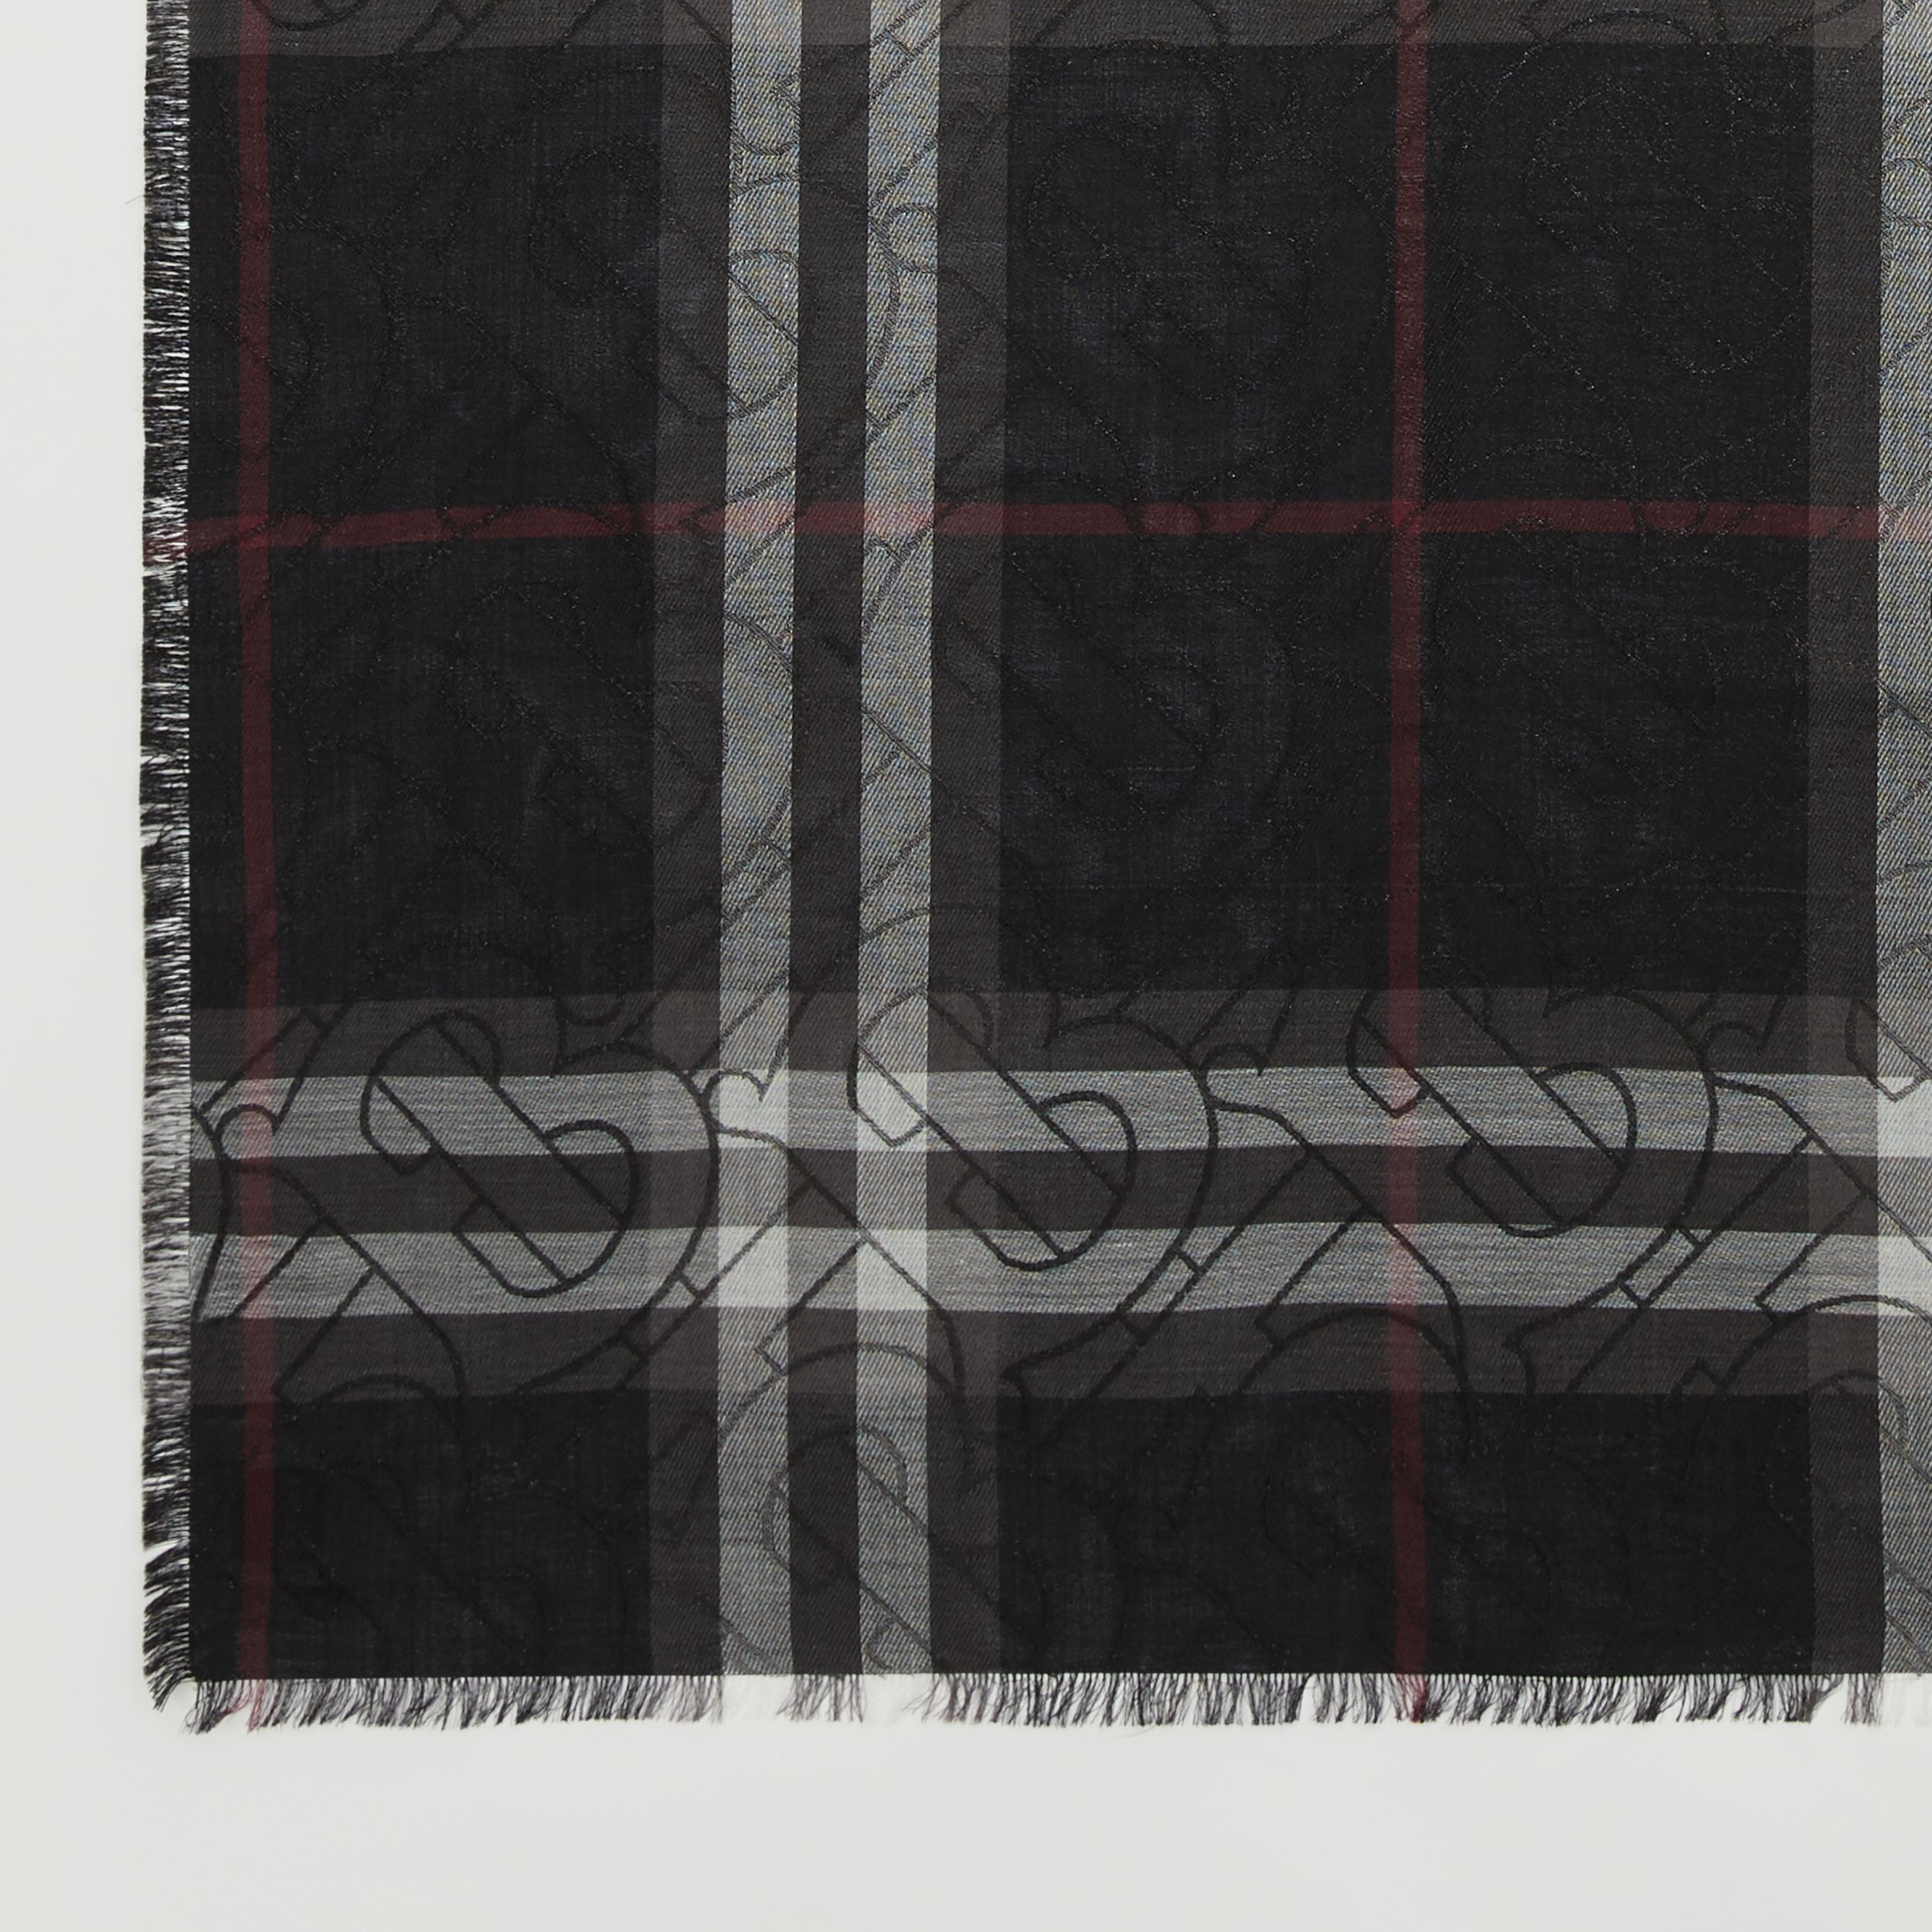 Metallic Monogram Lightweight Check Silk Blend Scarf in Black | Burberry - 2